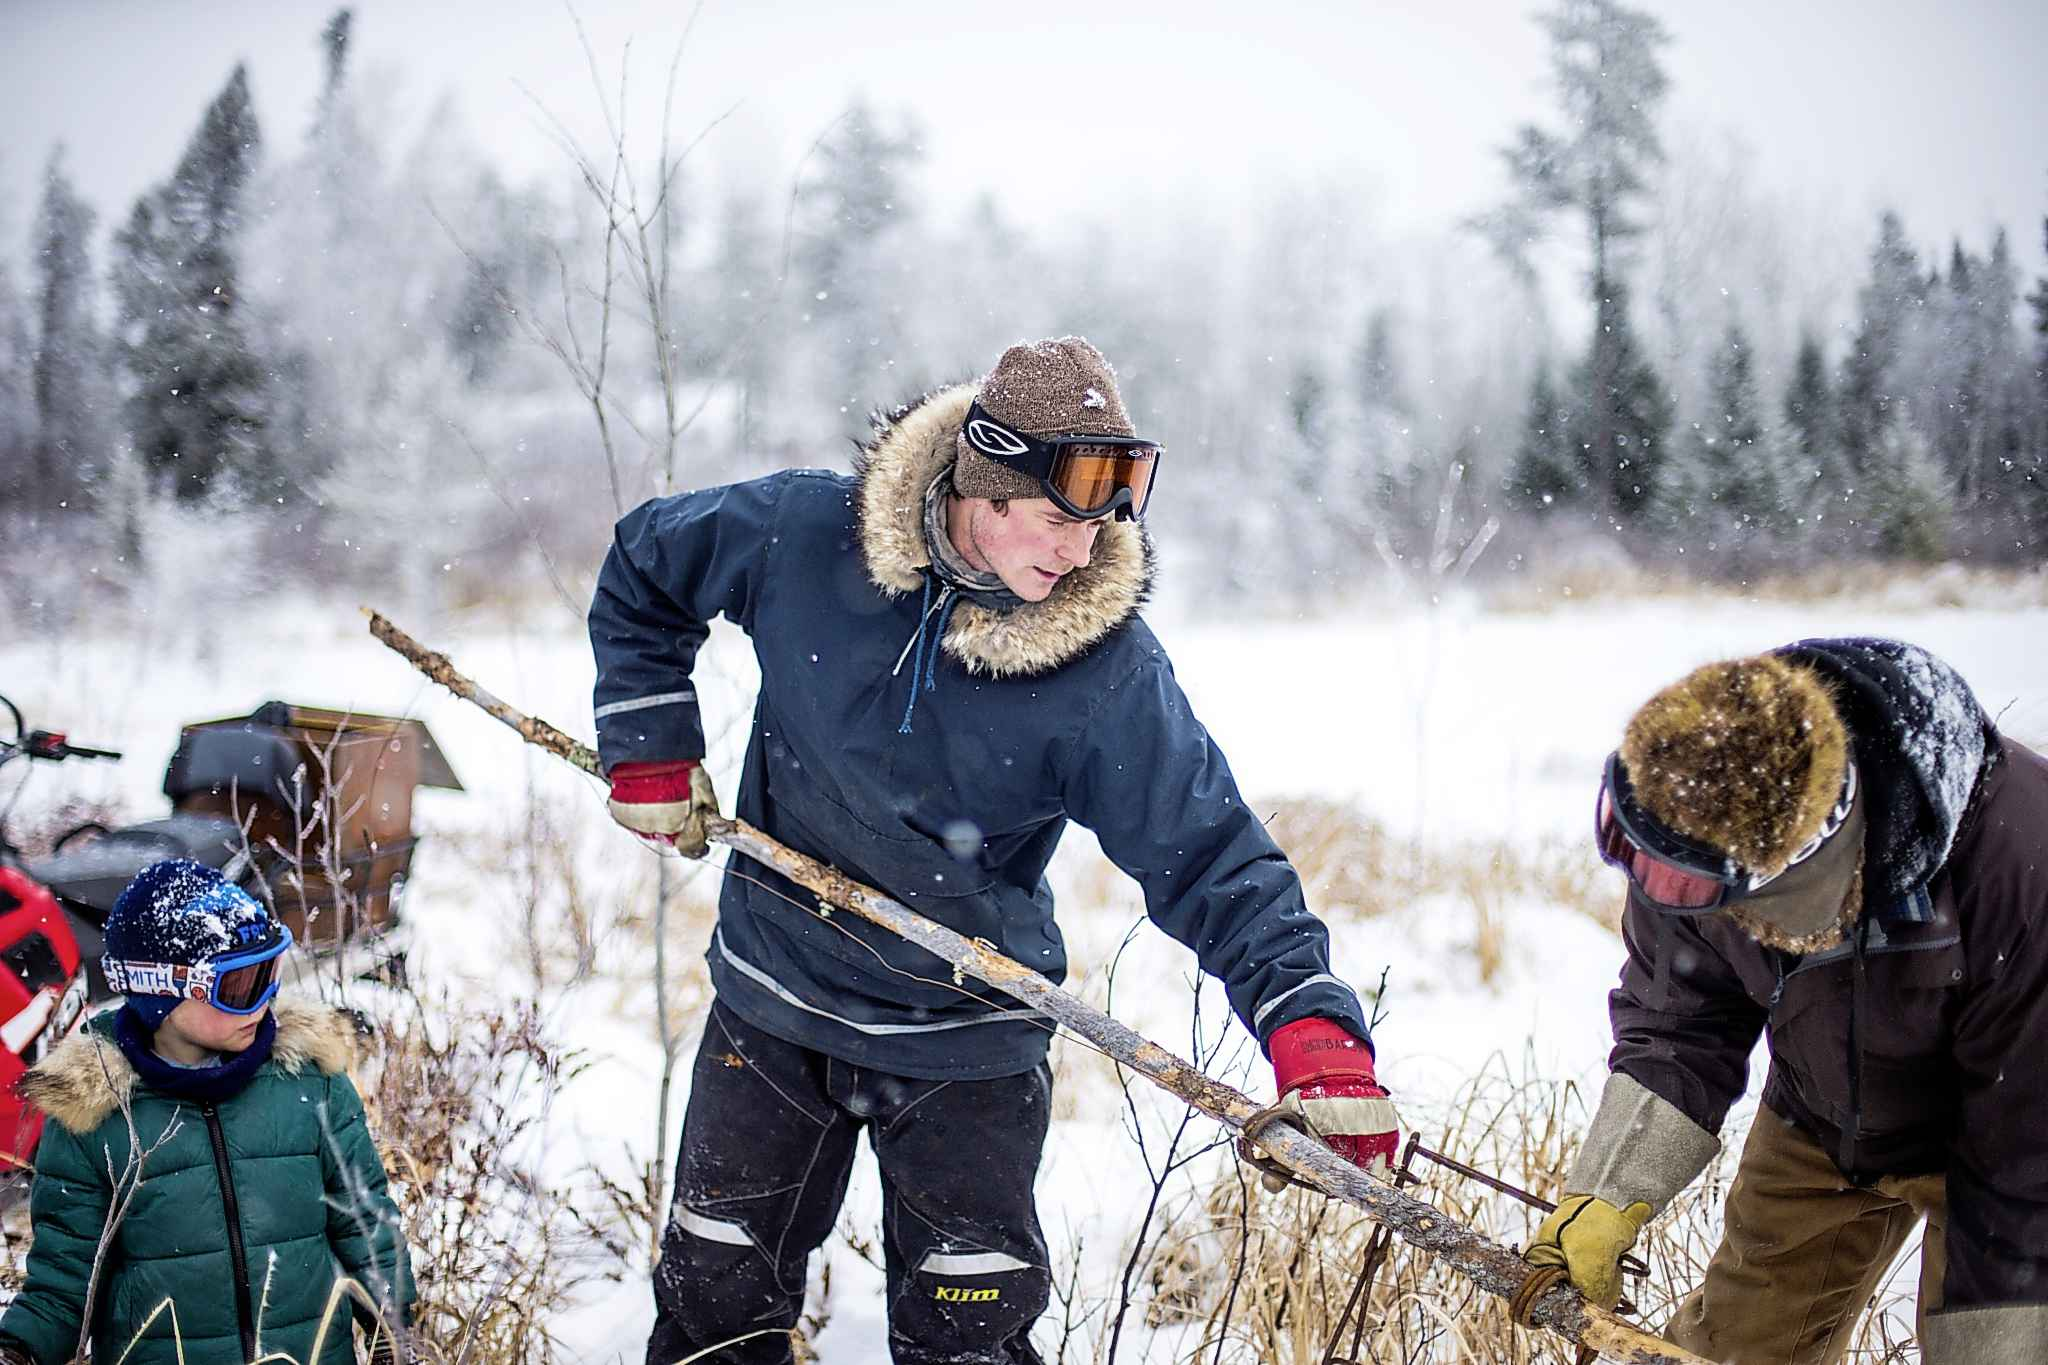 Devin Imrie sets a new beaver trap with help from his dad, Murray, on their trapline near Falcon Lake while Devin's son, Thomas, 5, looks on.